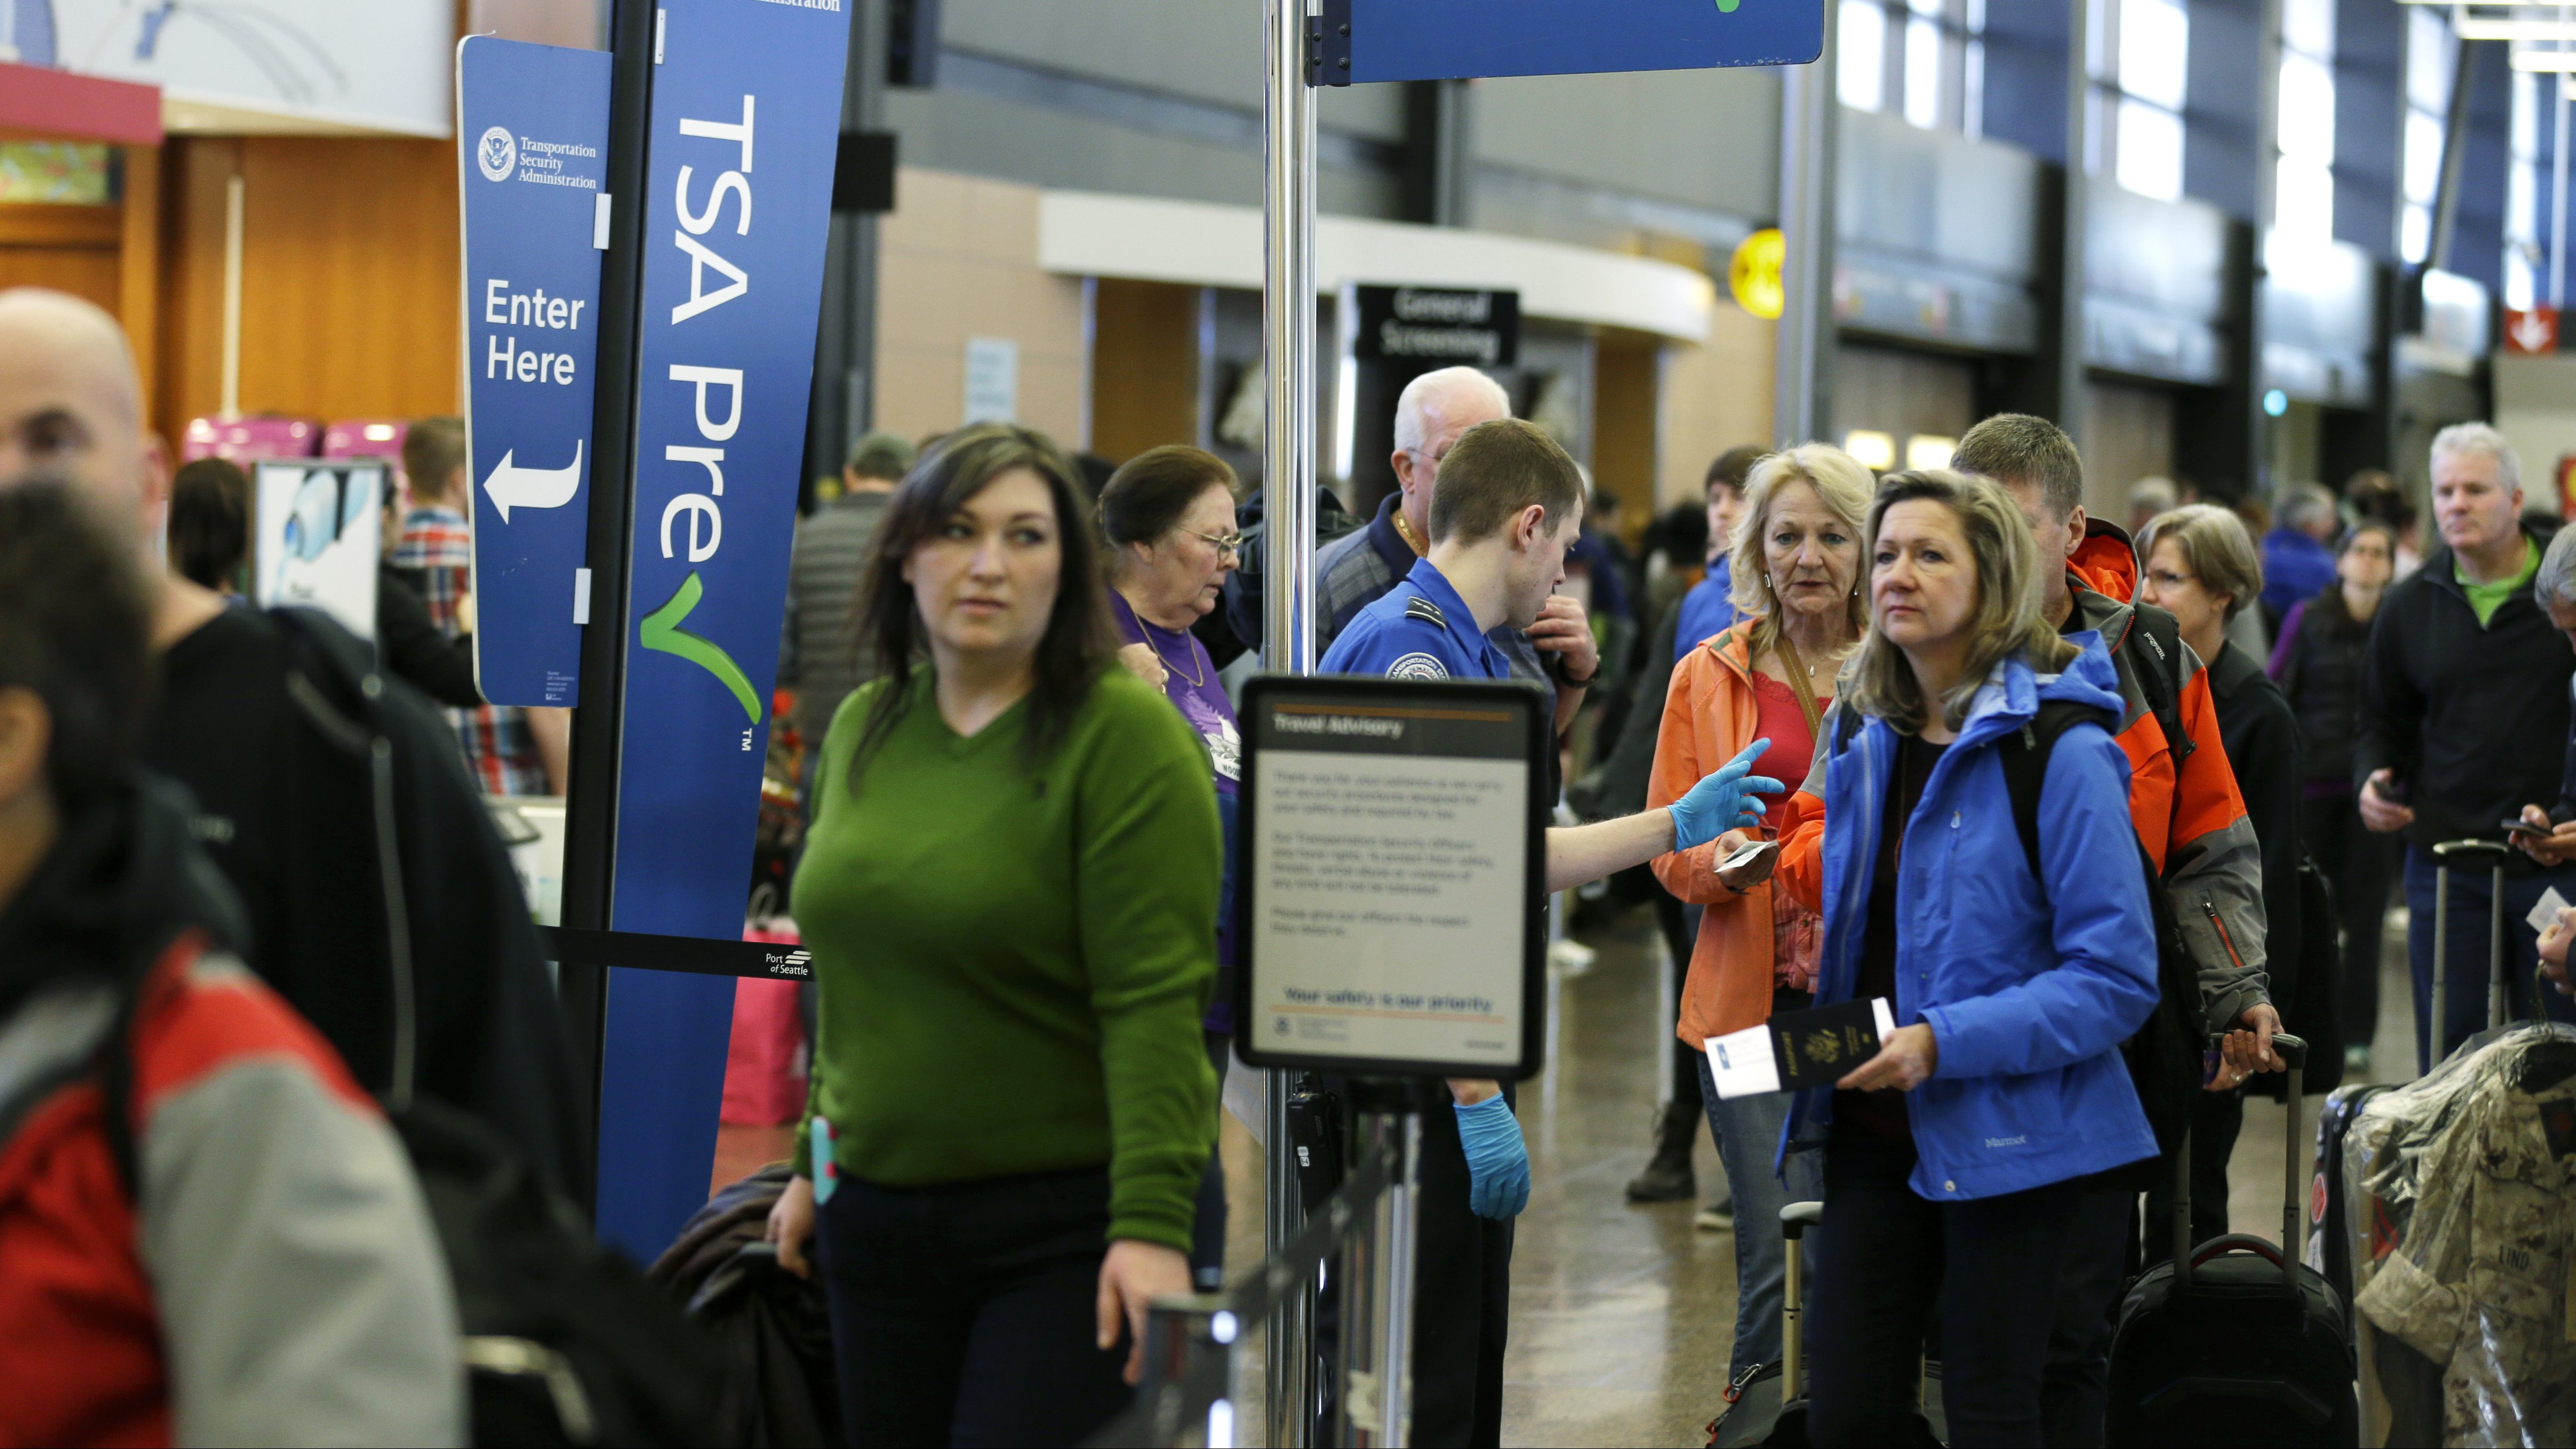 FILE - In this March 17, 2016, file photo, travelers authorized to use the Transportation Security Administration's PreCheck expedited security line at Seattle-Tacoma International Airport in Seattle have their documents checked by TSA workers. Thousands of fliers enrolled in trusted traveler programs such as PreCheck aren't getting the expedited screening they paid for because of clerical errors with their reservations. (AP Photo/Ted S. Warren, File)